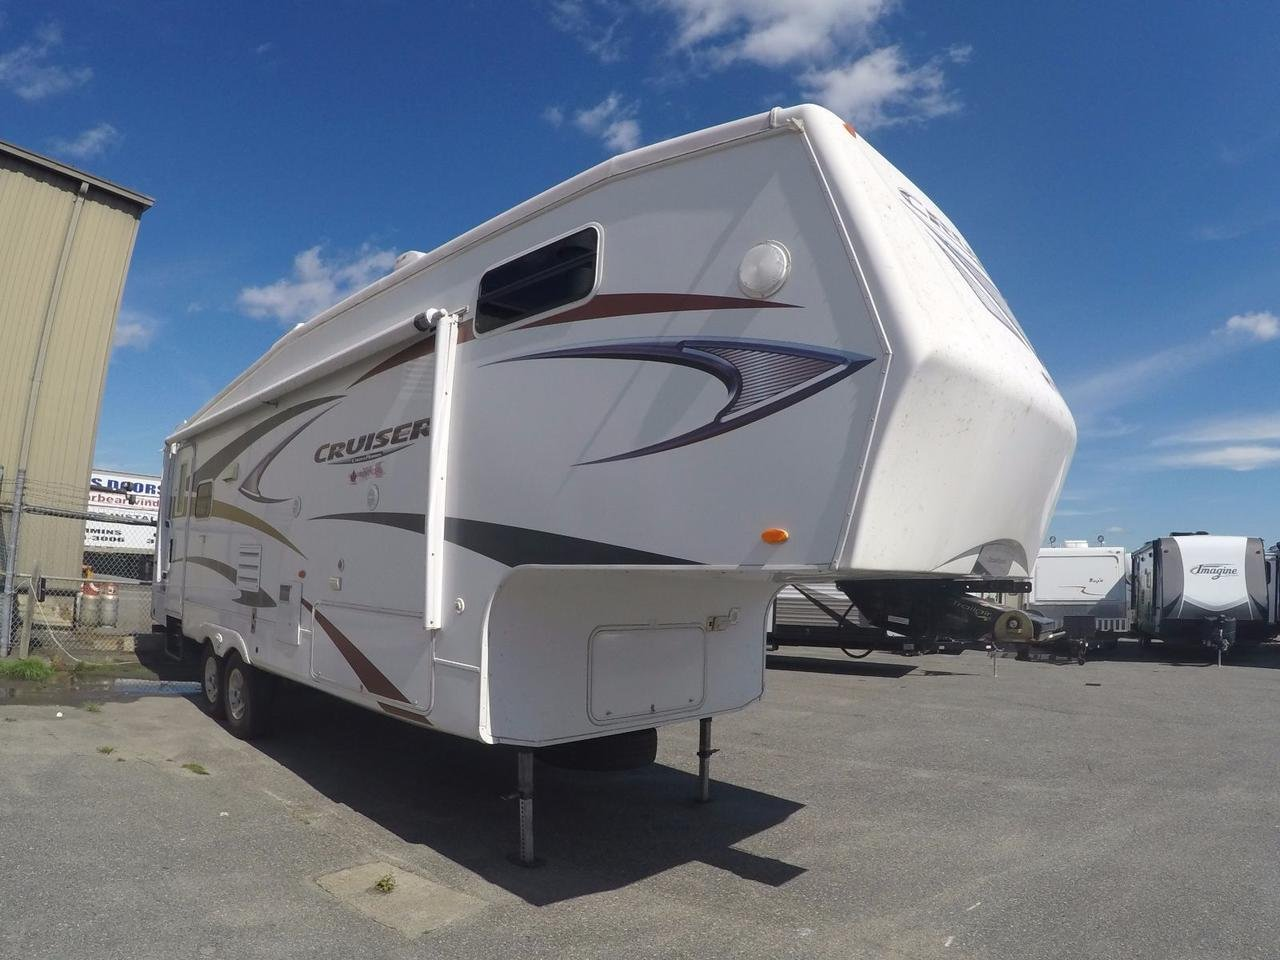 Pre-Owned 2010 Crossroads Cruiser 28RL